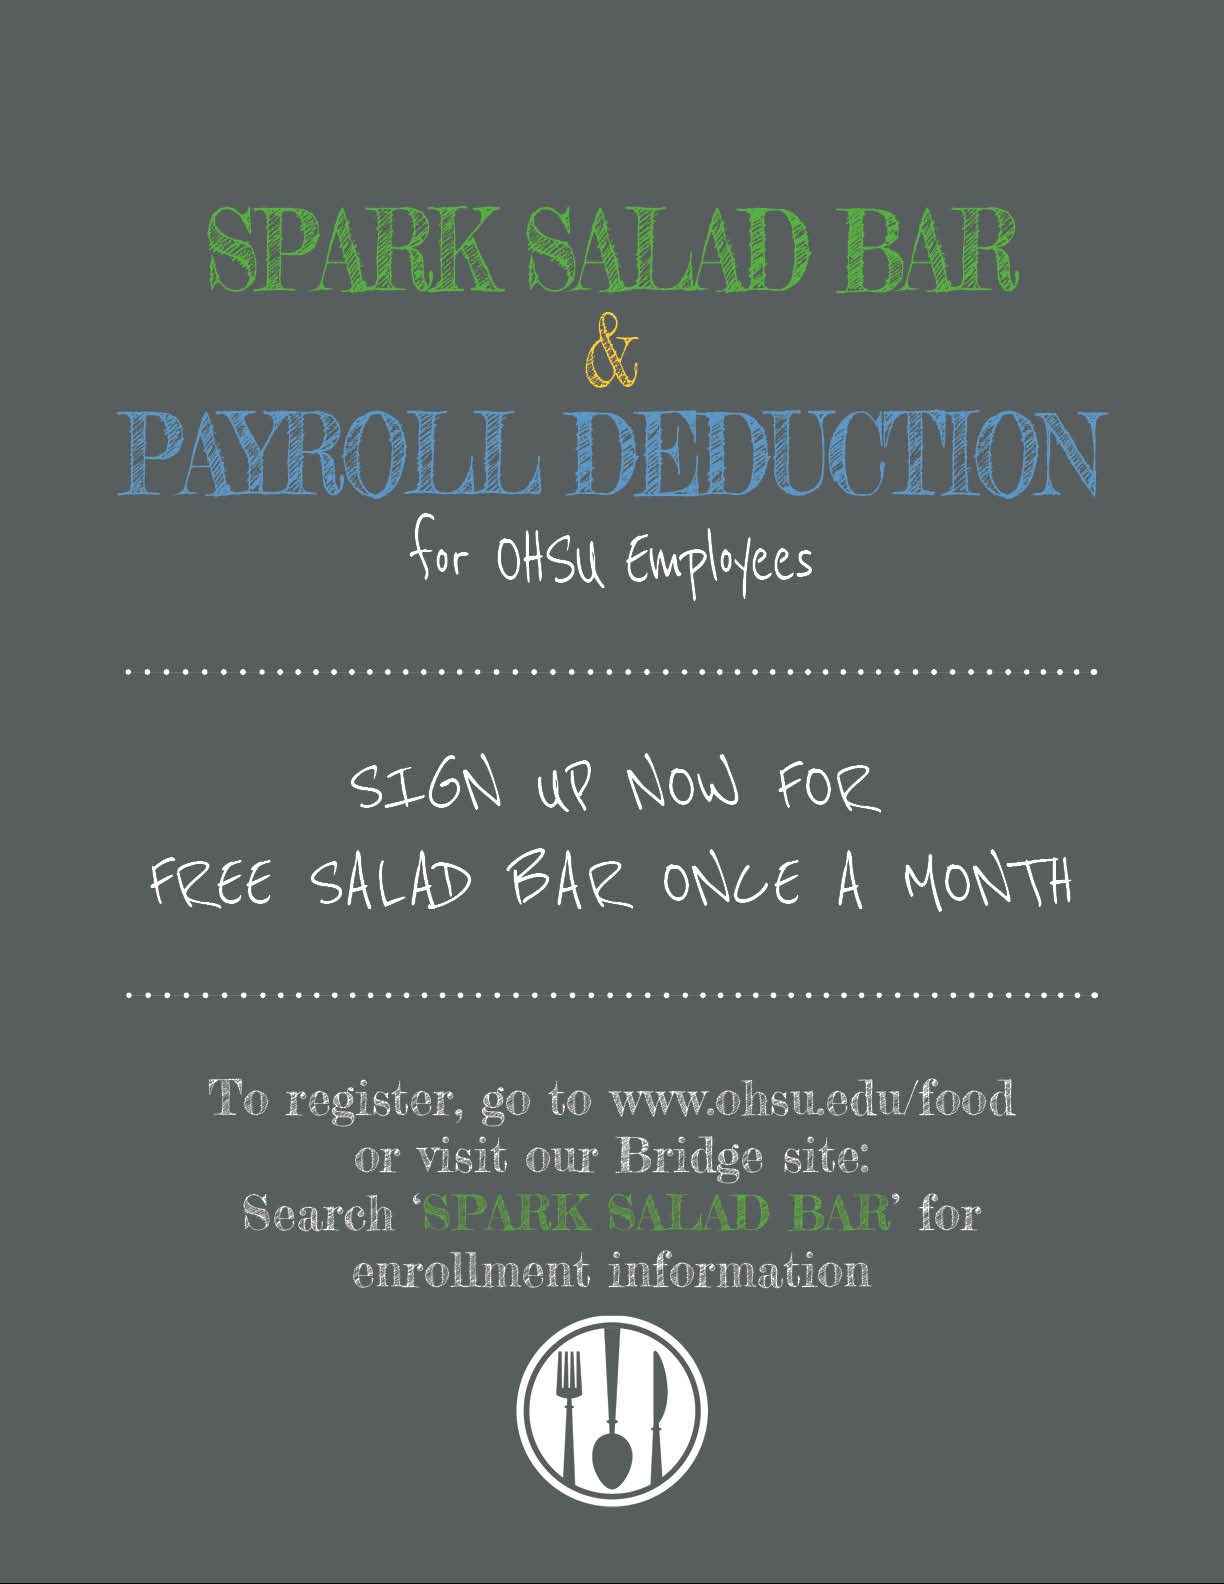 Spark Salad Bar and Payroll Deduction poster